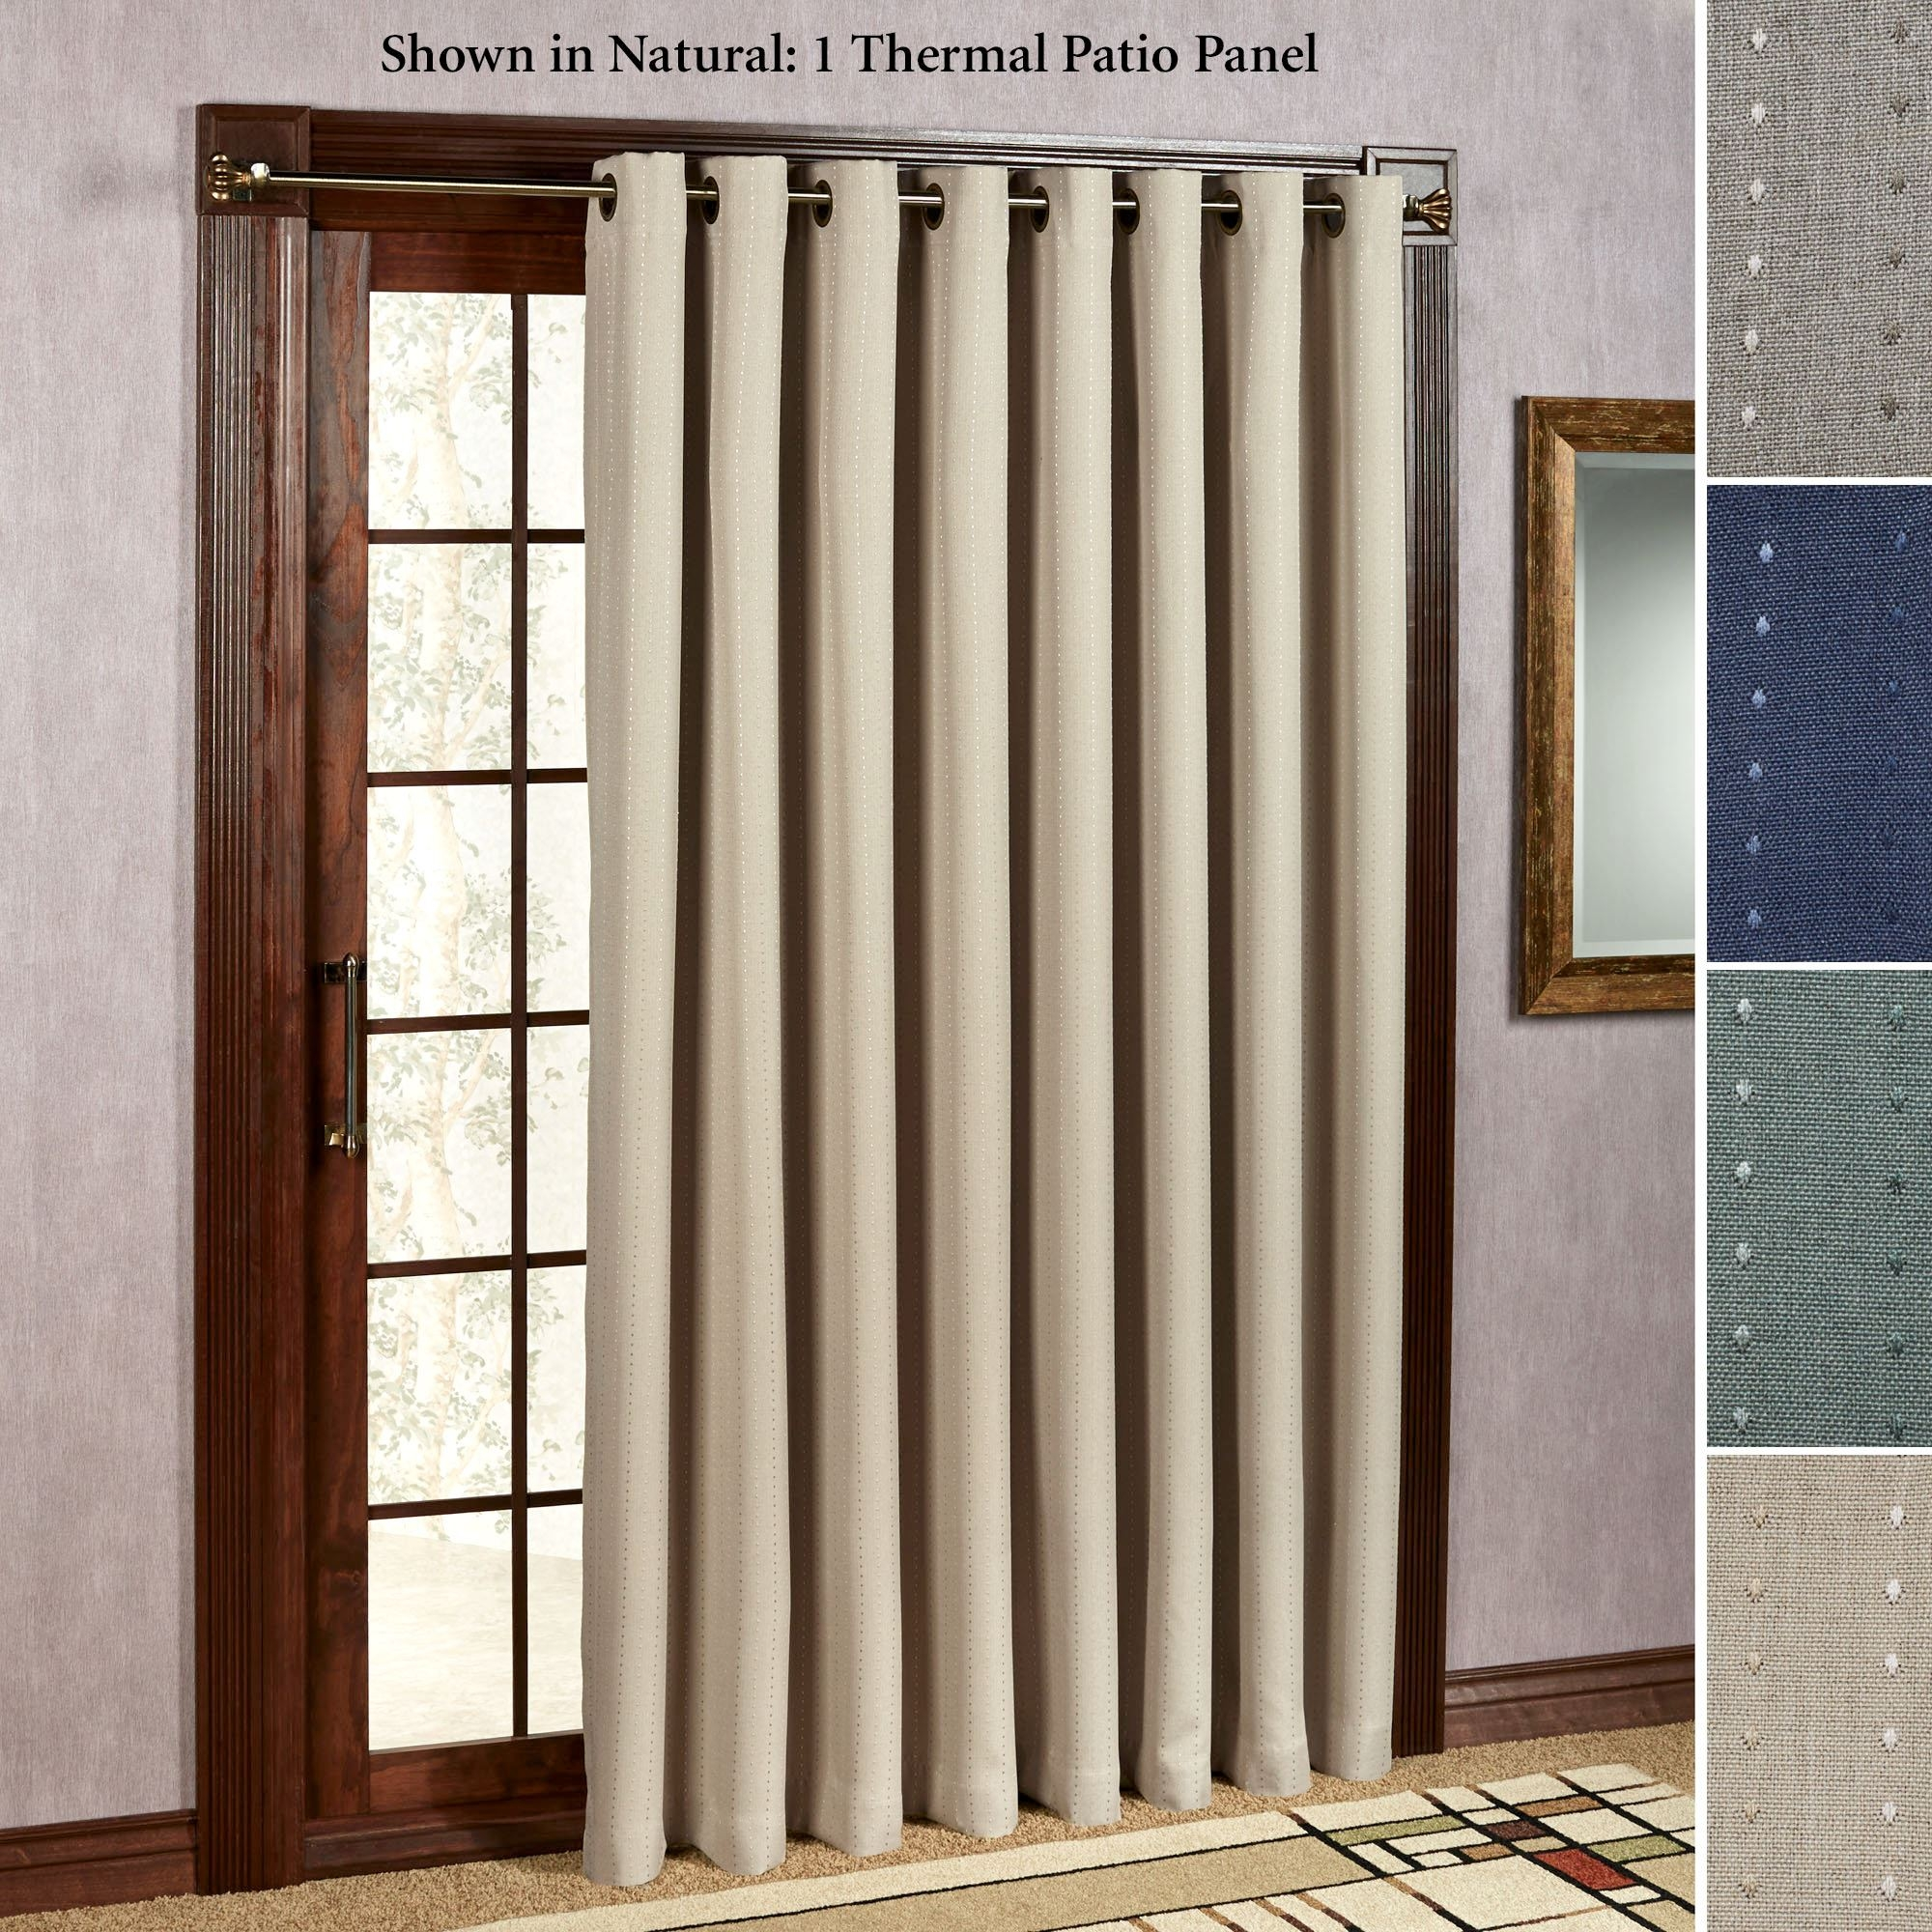 Closet Beads Curtains Curtain Panels For Sliding Glass Doors Sliding Doors